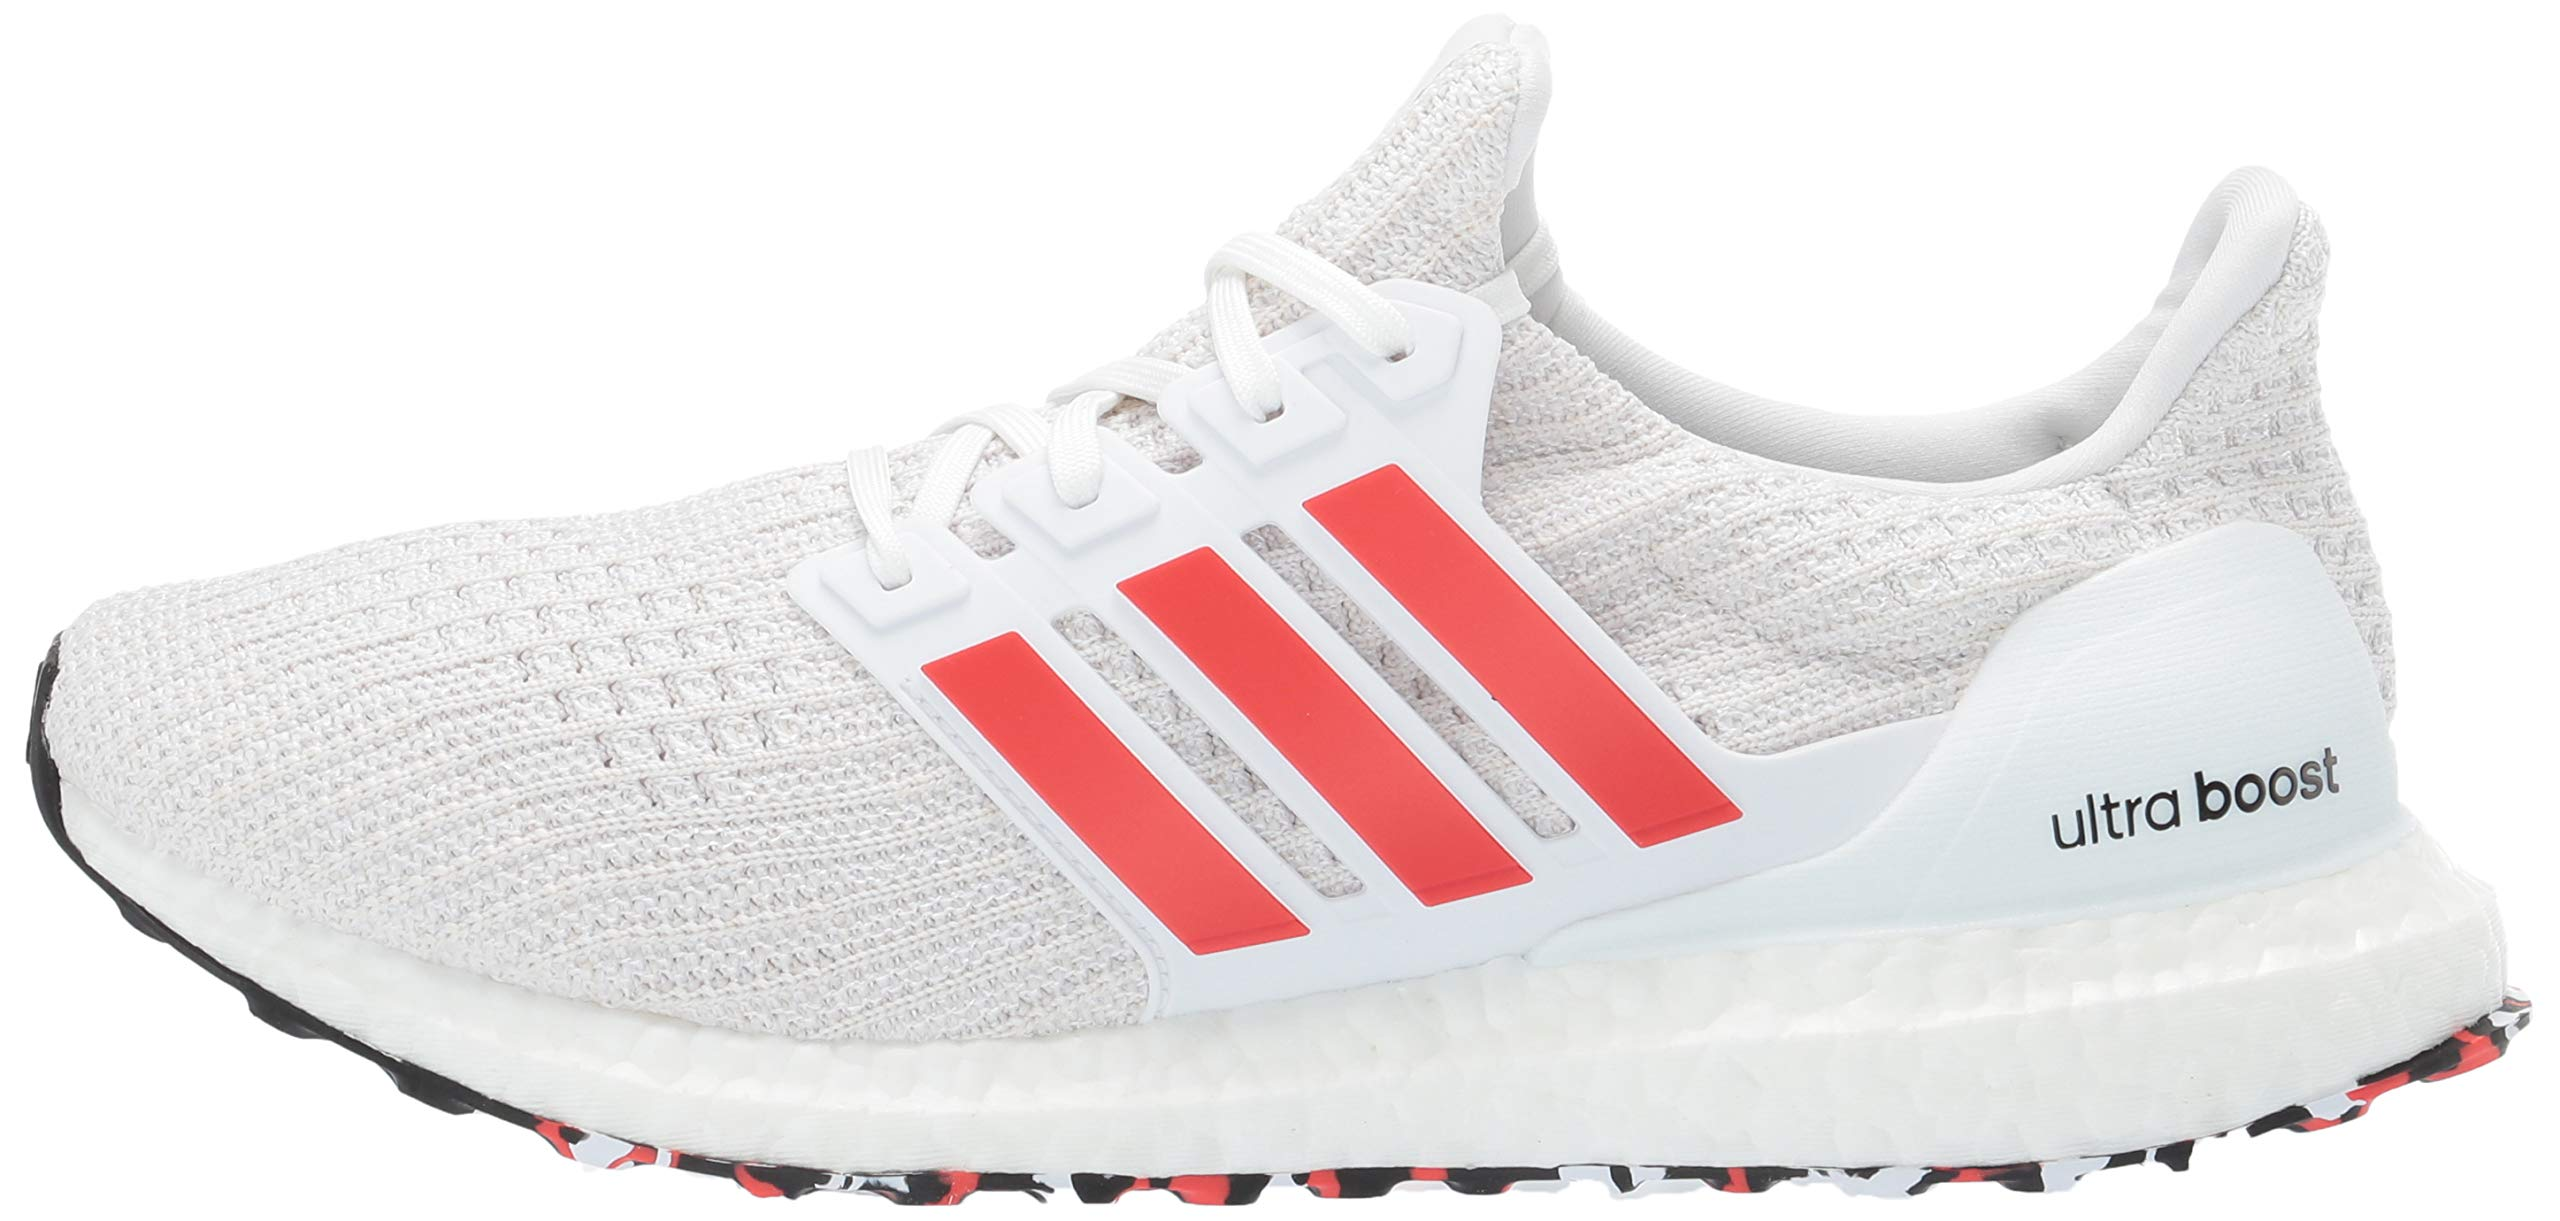 adidas Men's Ultraboost, Active red/Chalk White, 4 M US by adidas (Image #5)